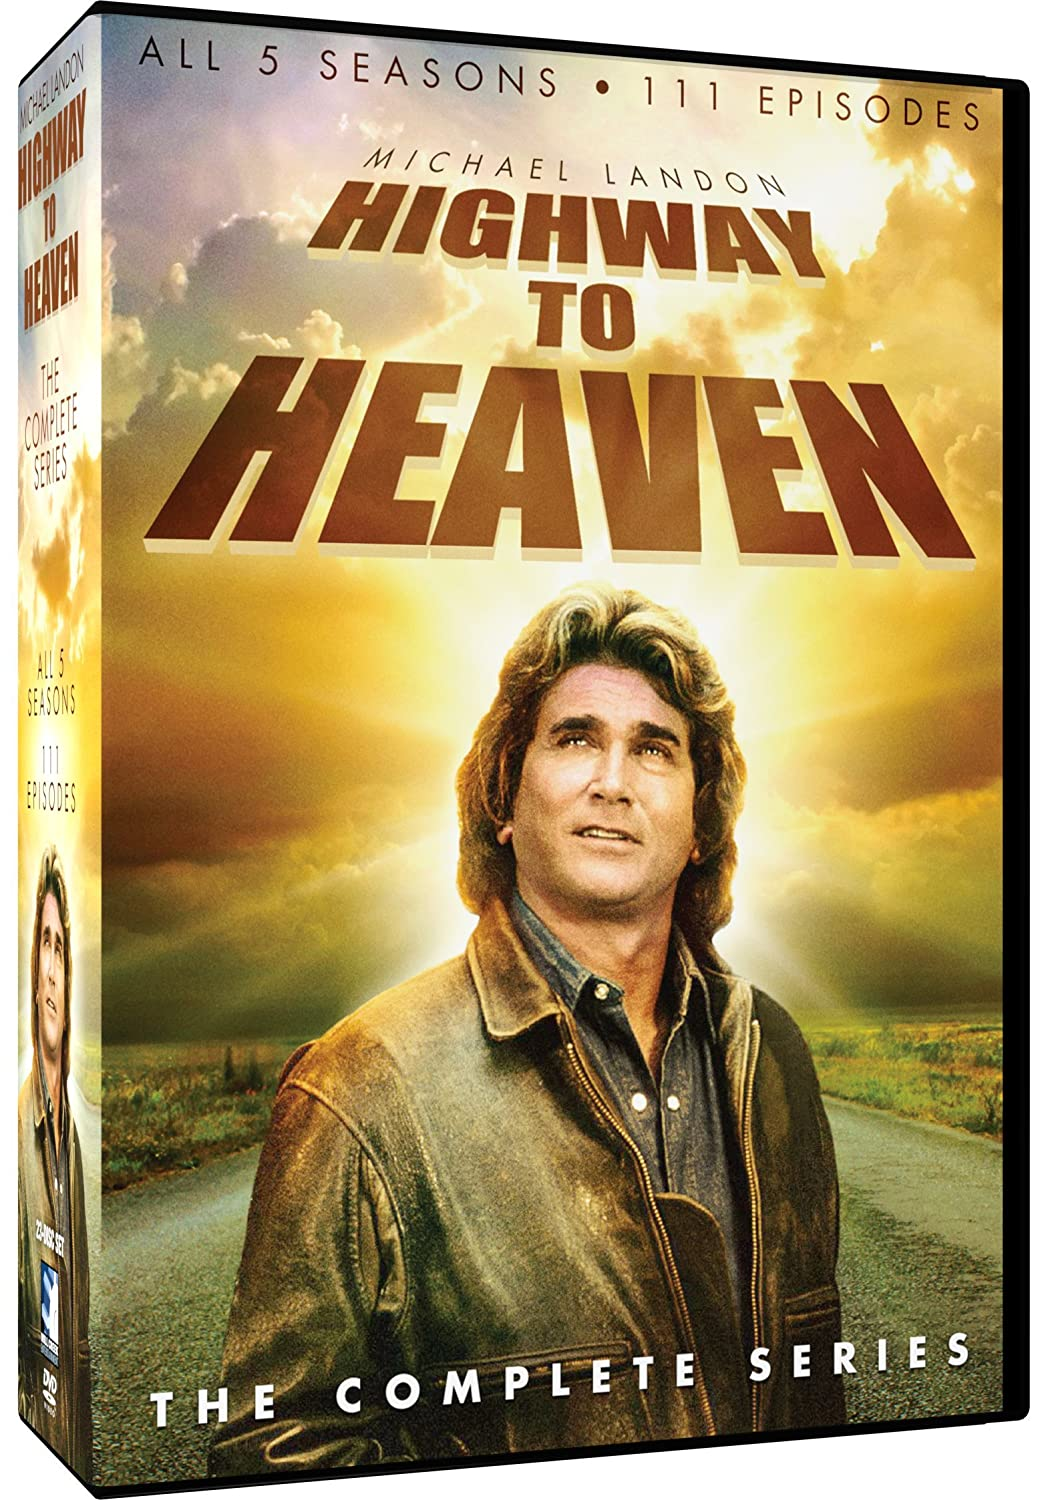 Highway to Heaven (1984 series)